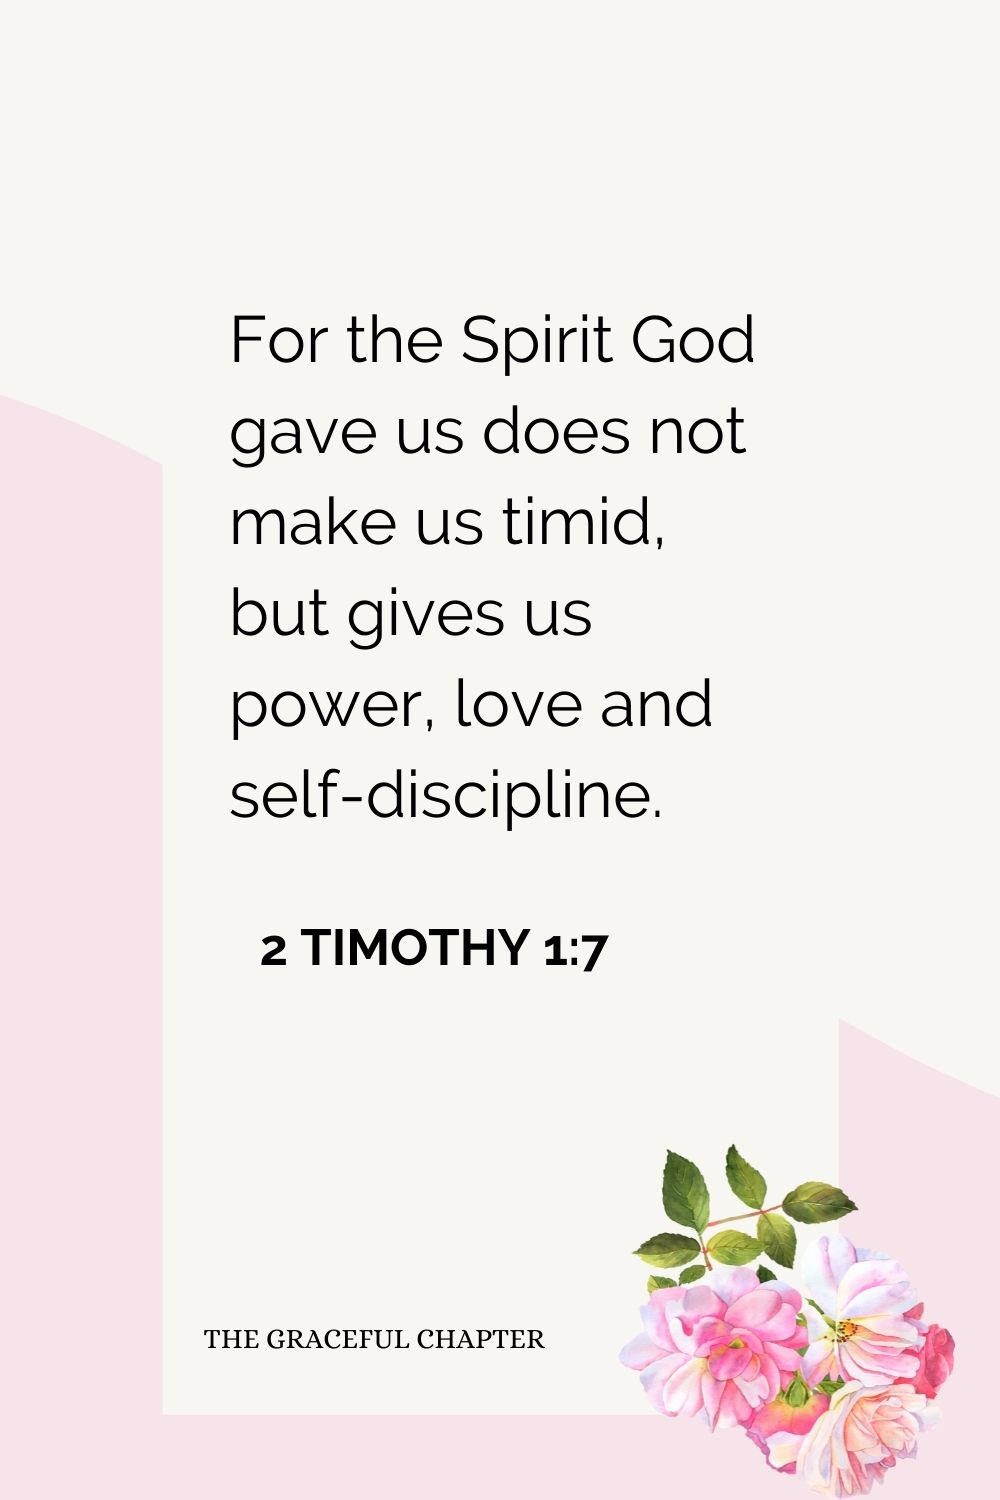 For the Spirit God gave us does not make us timid, but gives us power, love and self-discipline. 2 Timothy 1:7